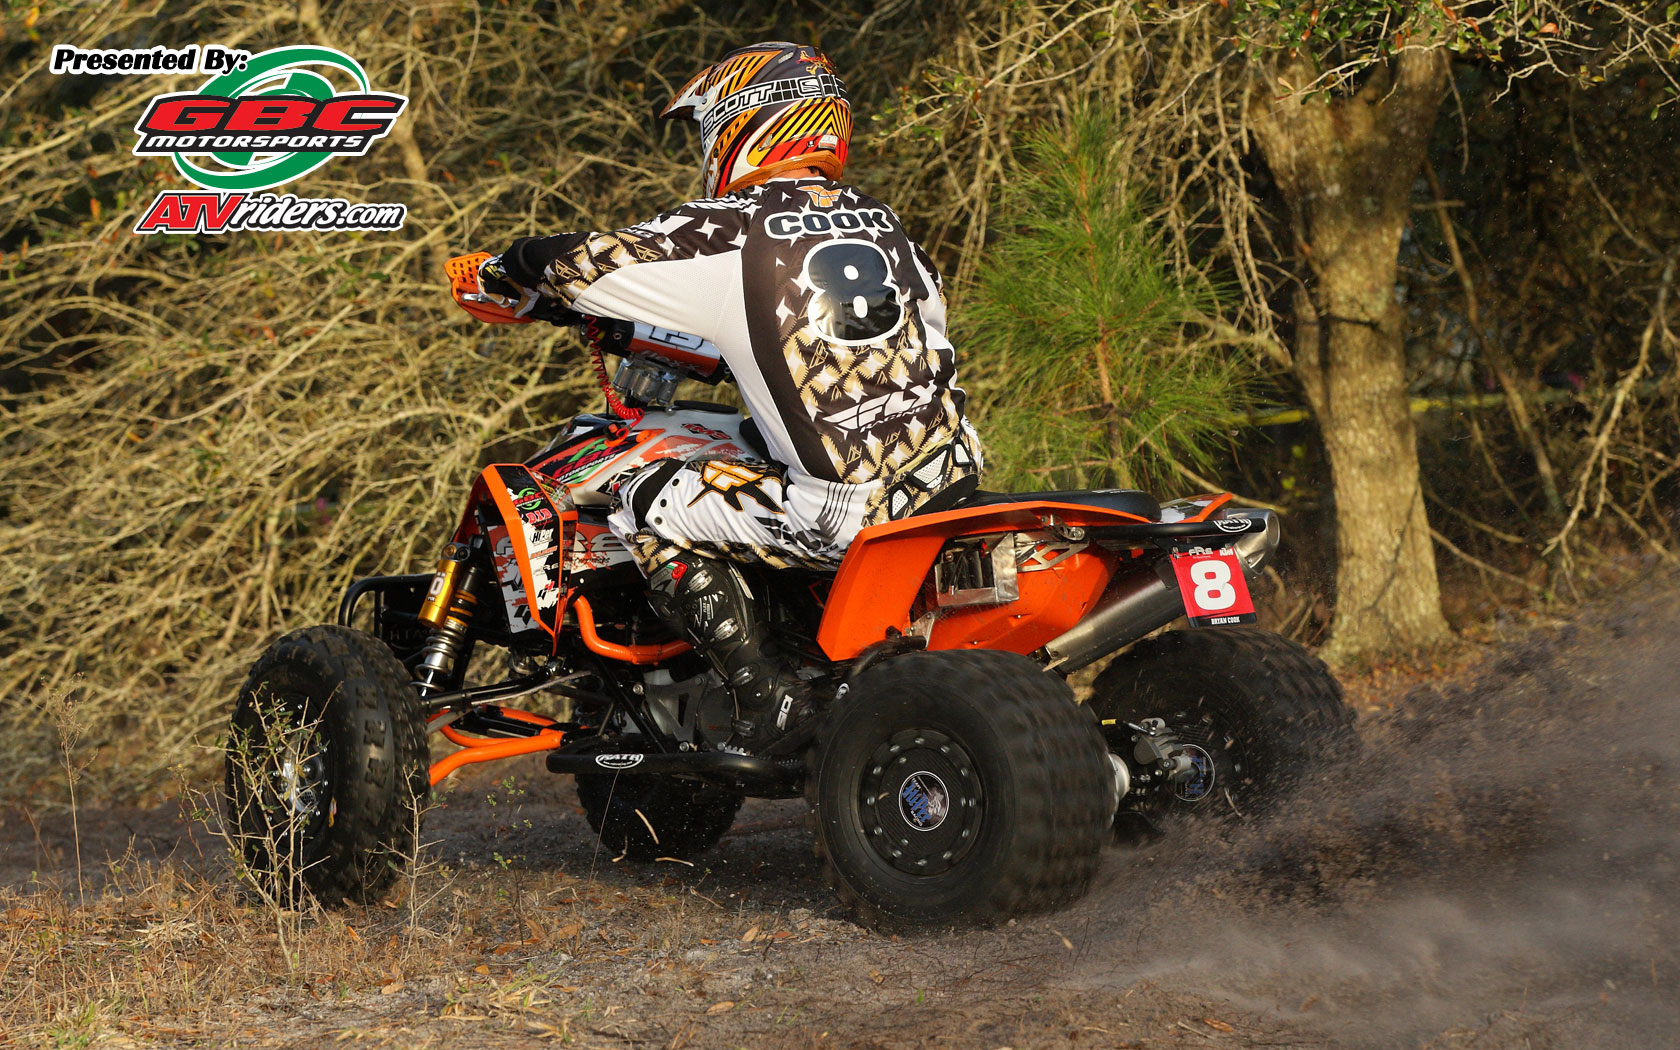 Ktm Quad 10 Atvs You Don 39 T See Every Day Dirt Wheels Magazine 2012 450 Xc W Wiring Diagram Fre S 8 Bryan Cook Atv Wednesday Wallpapers